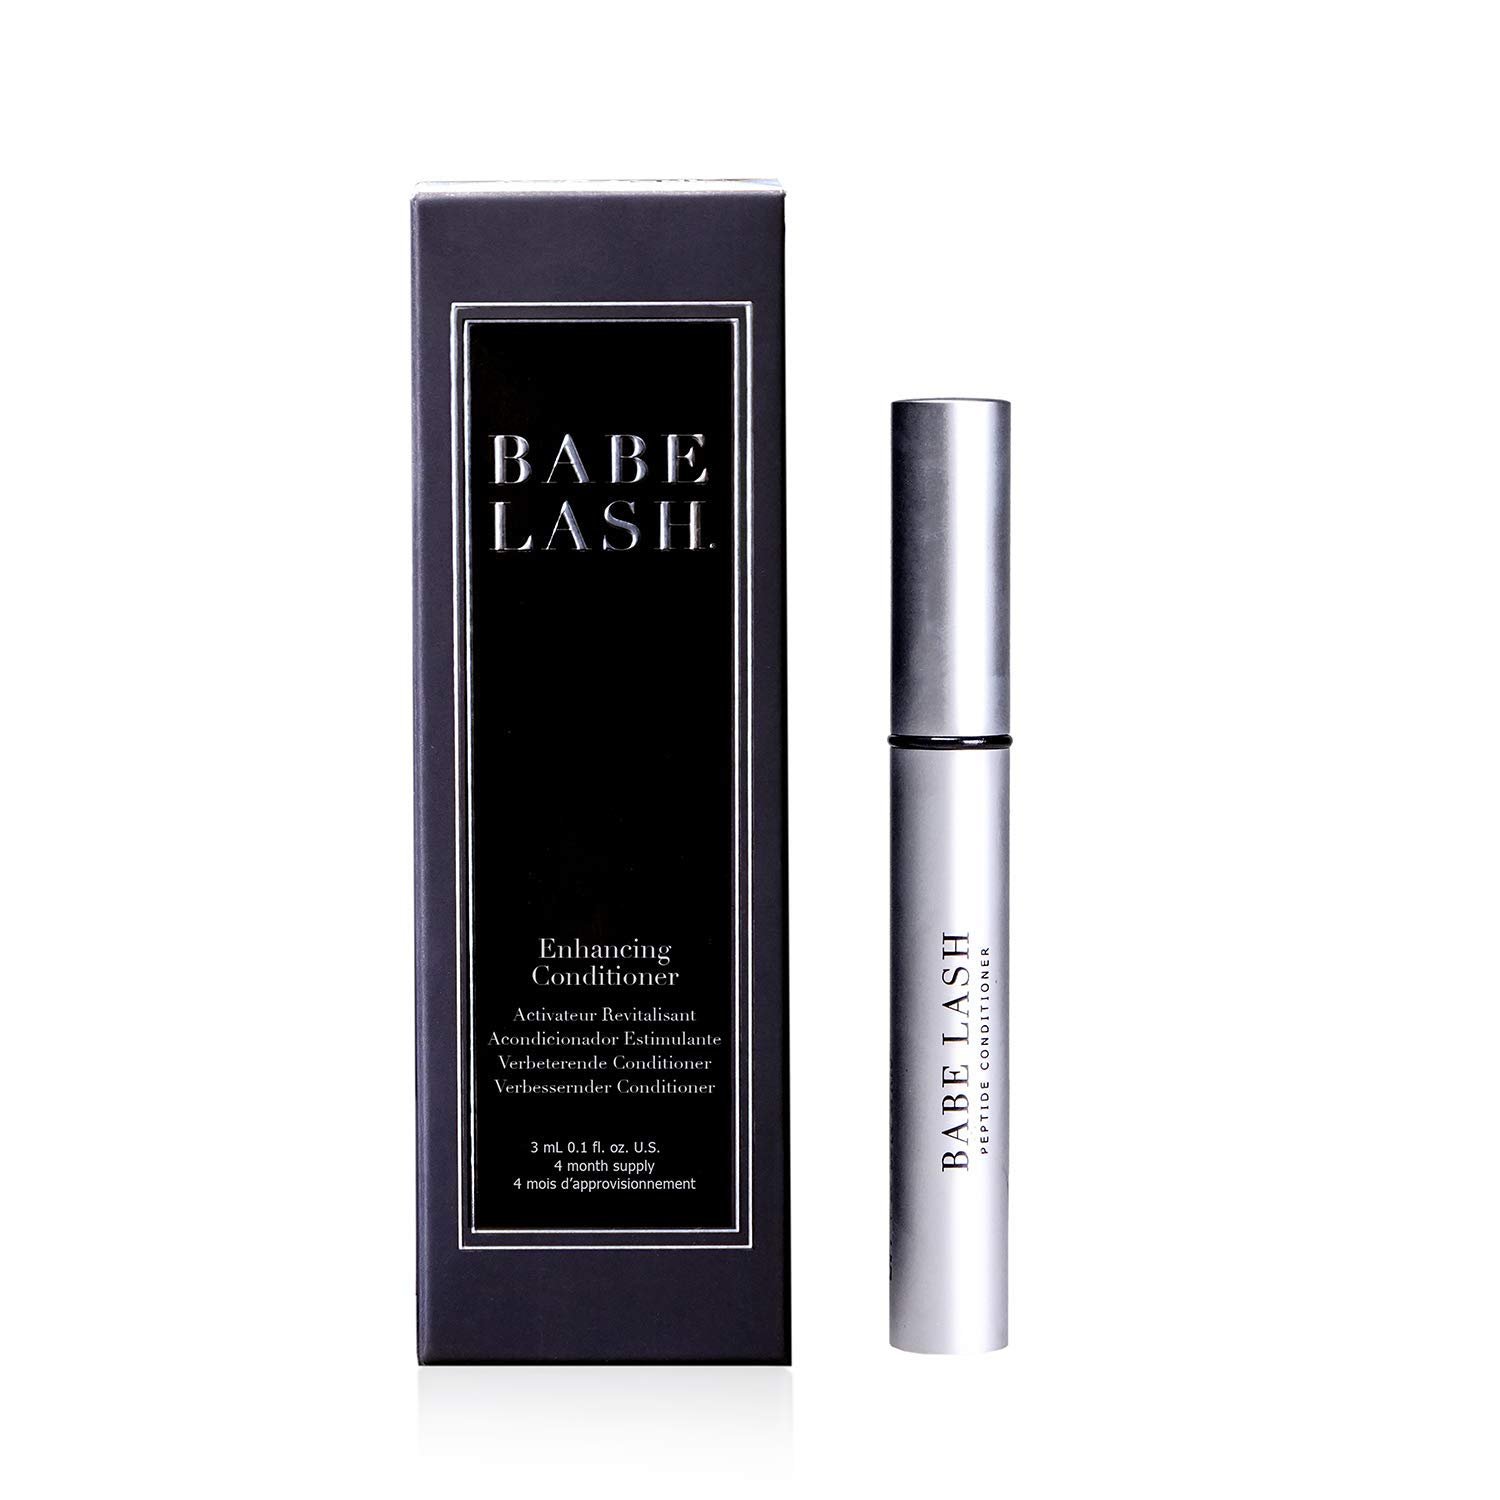 Babe Lash Enhancing Conditioner - Eyelash & Brow Enhancer with Peptides and Biotin - Nourish and add Luster to Lashes & Brows - Promotes appearance of soft and strong lashes - 3 mL by Babe Lash